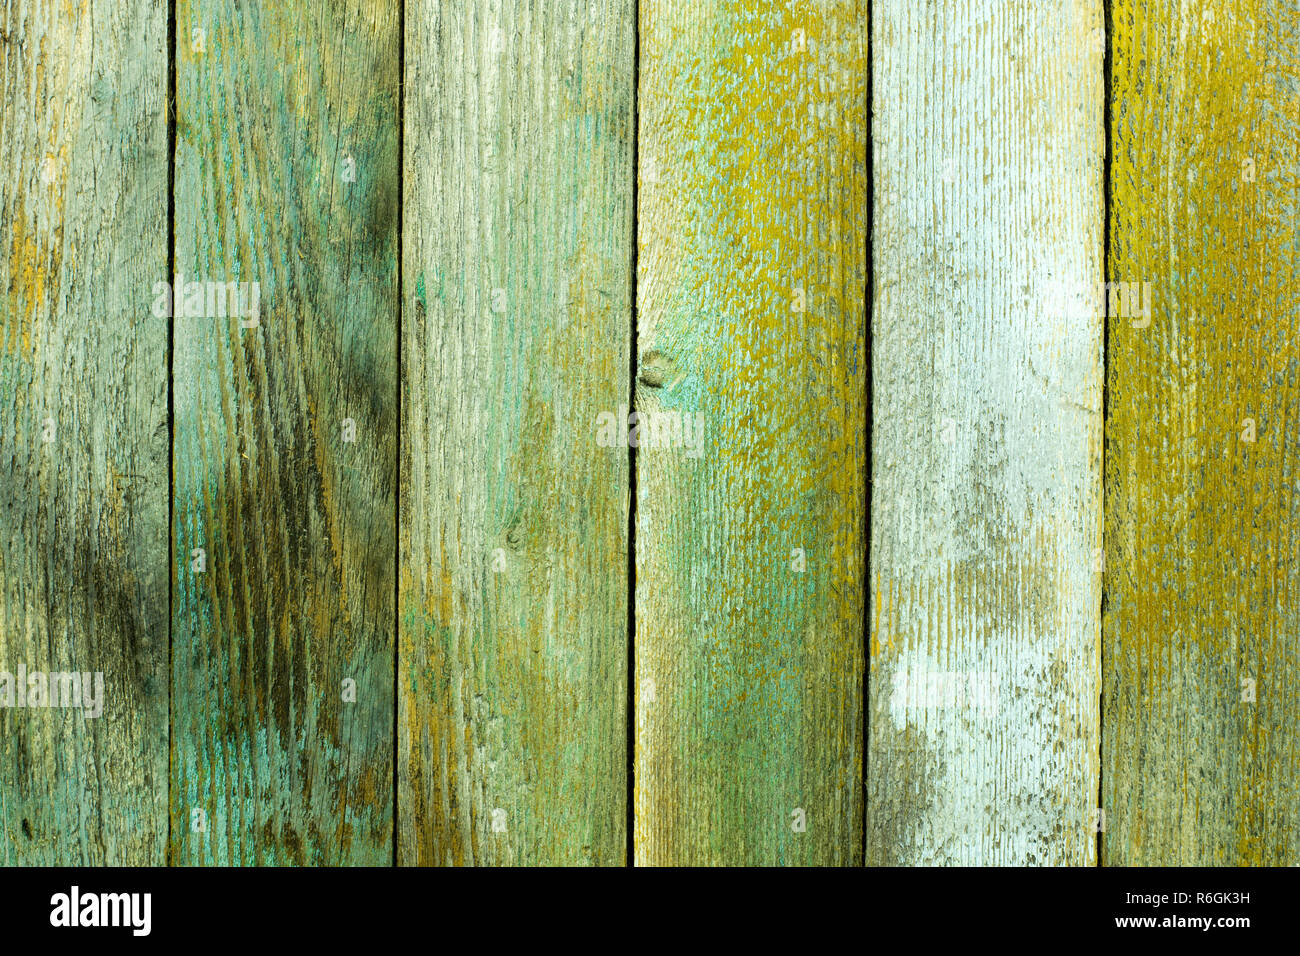 The Textural Background From Old Wooden Levels Stock Photo